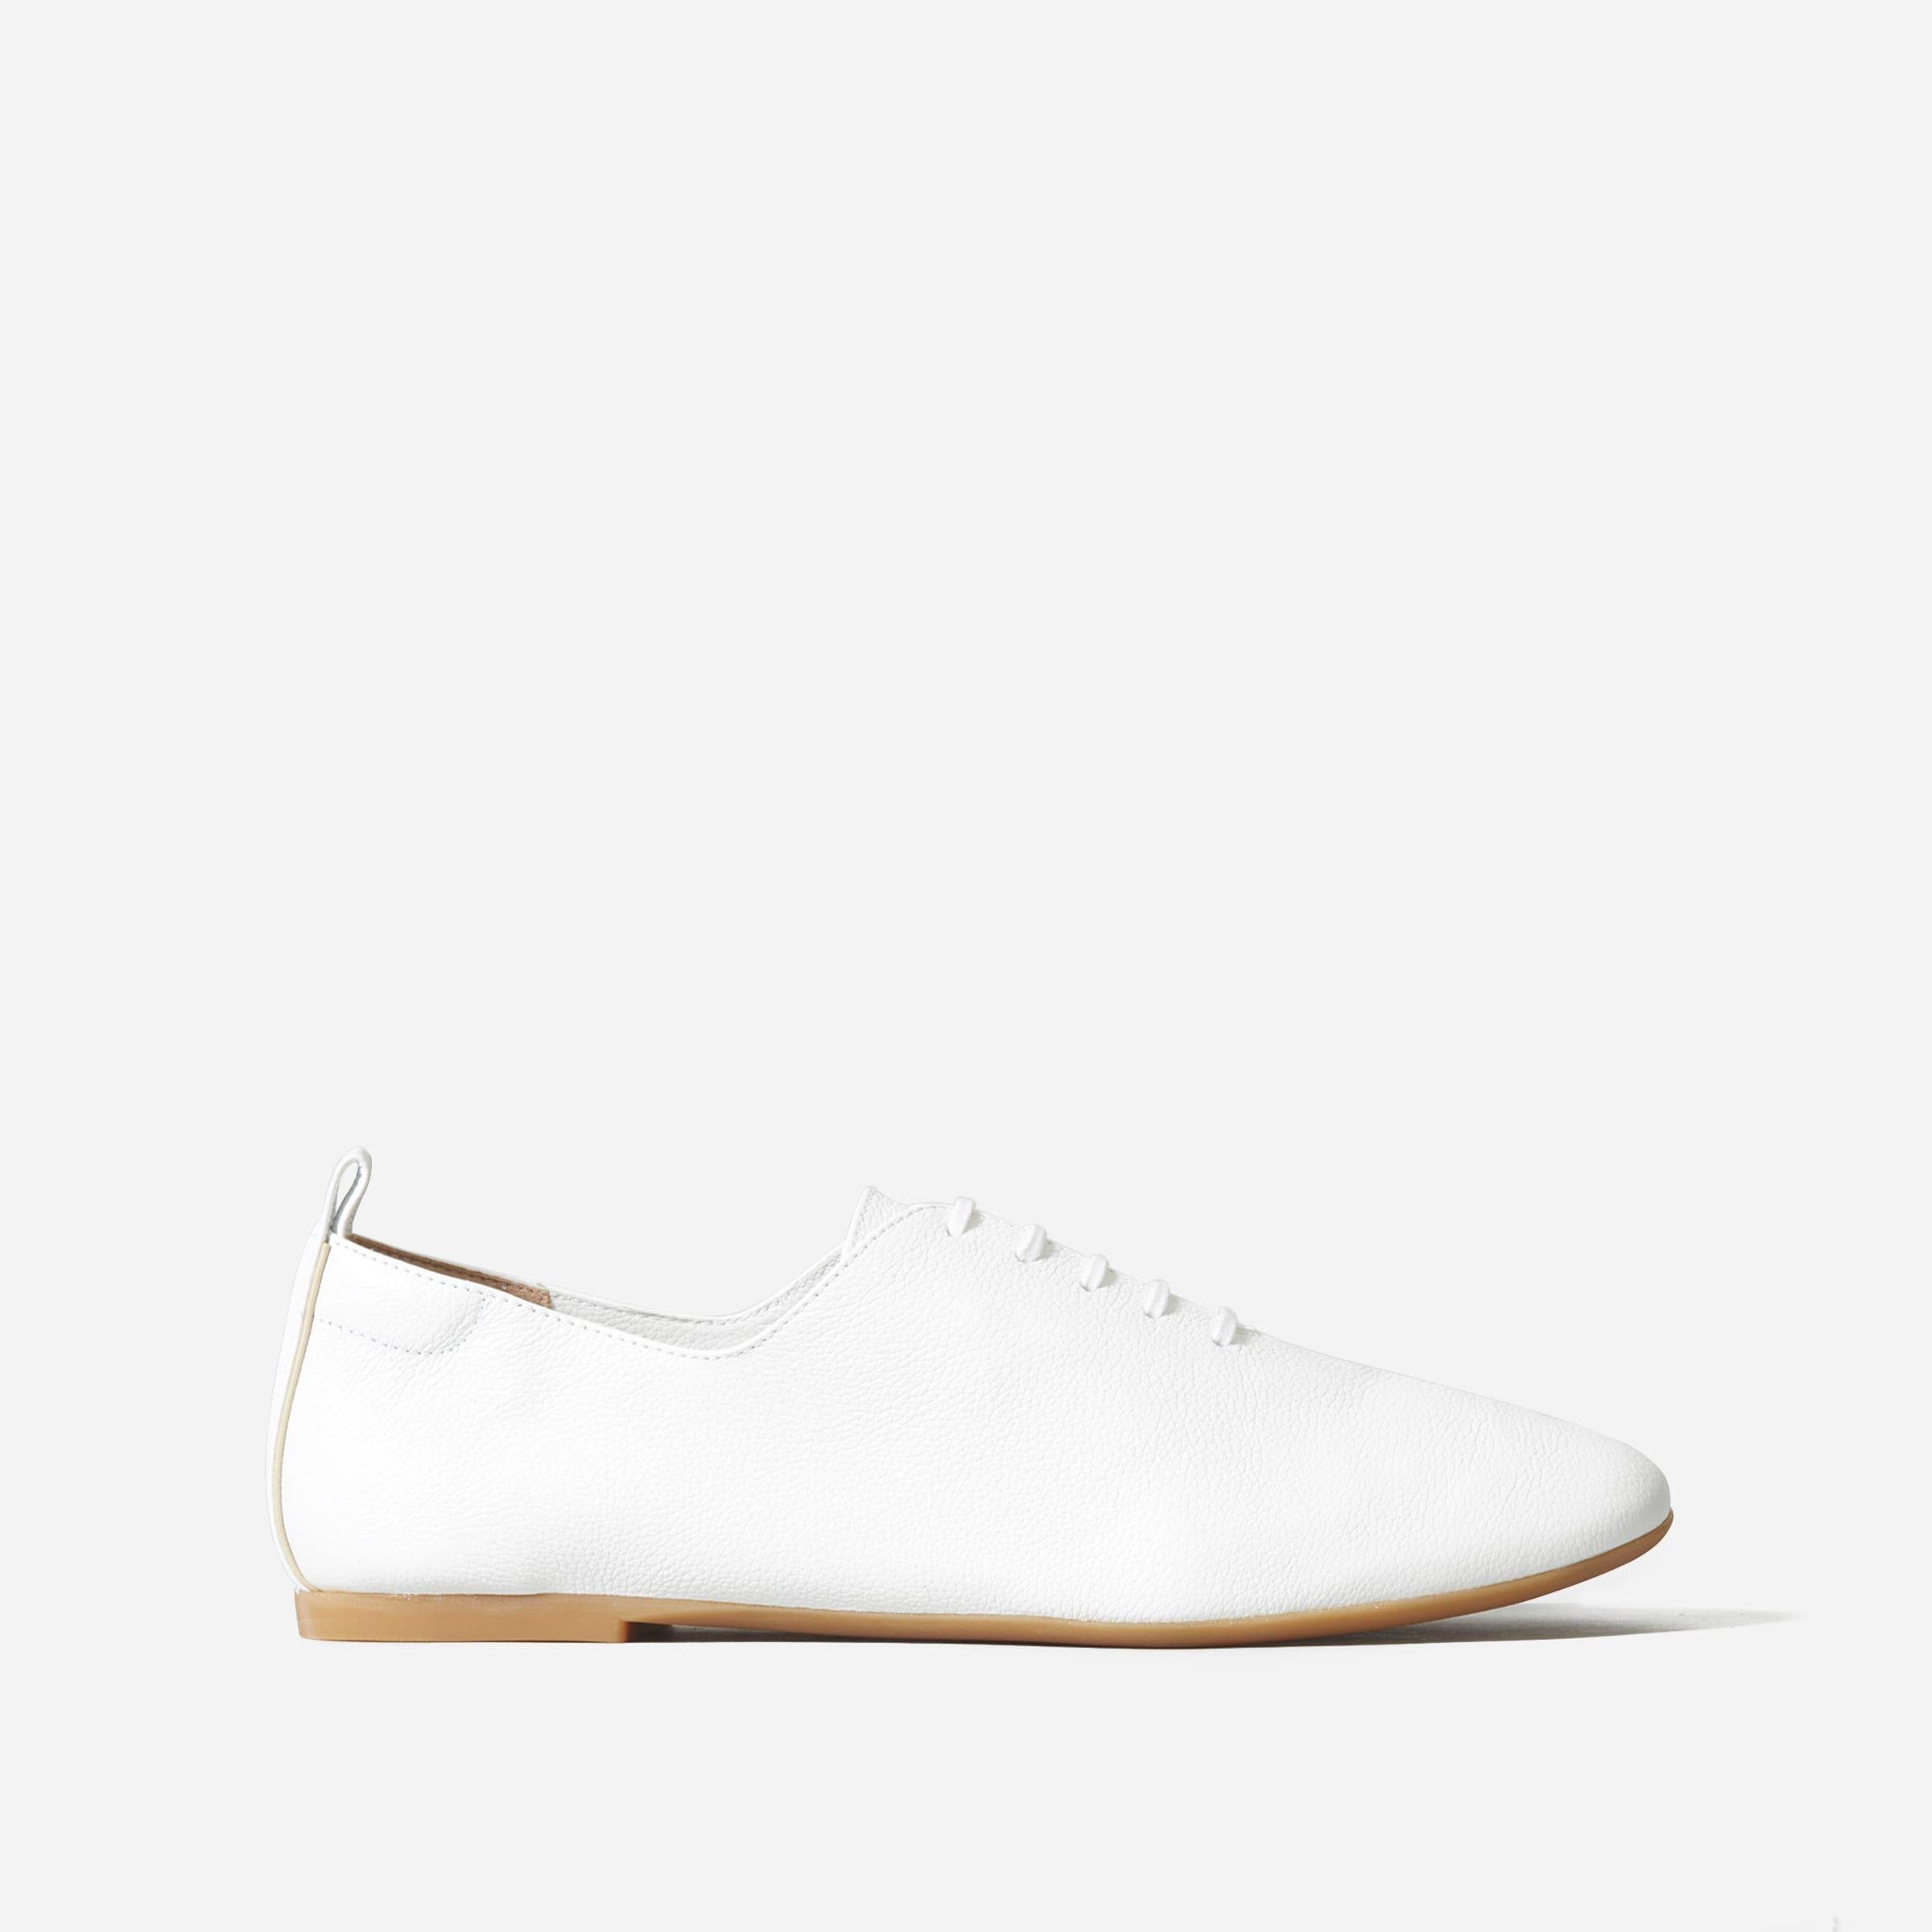 The Leather Lace-Up Flat 0